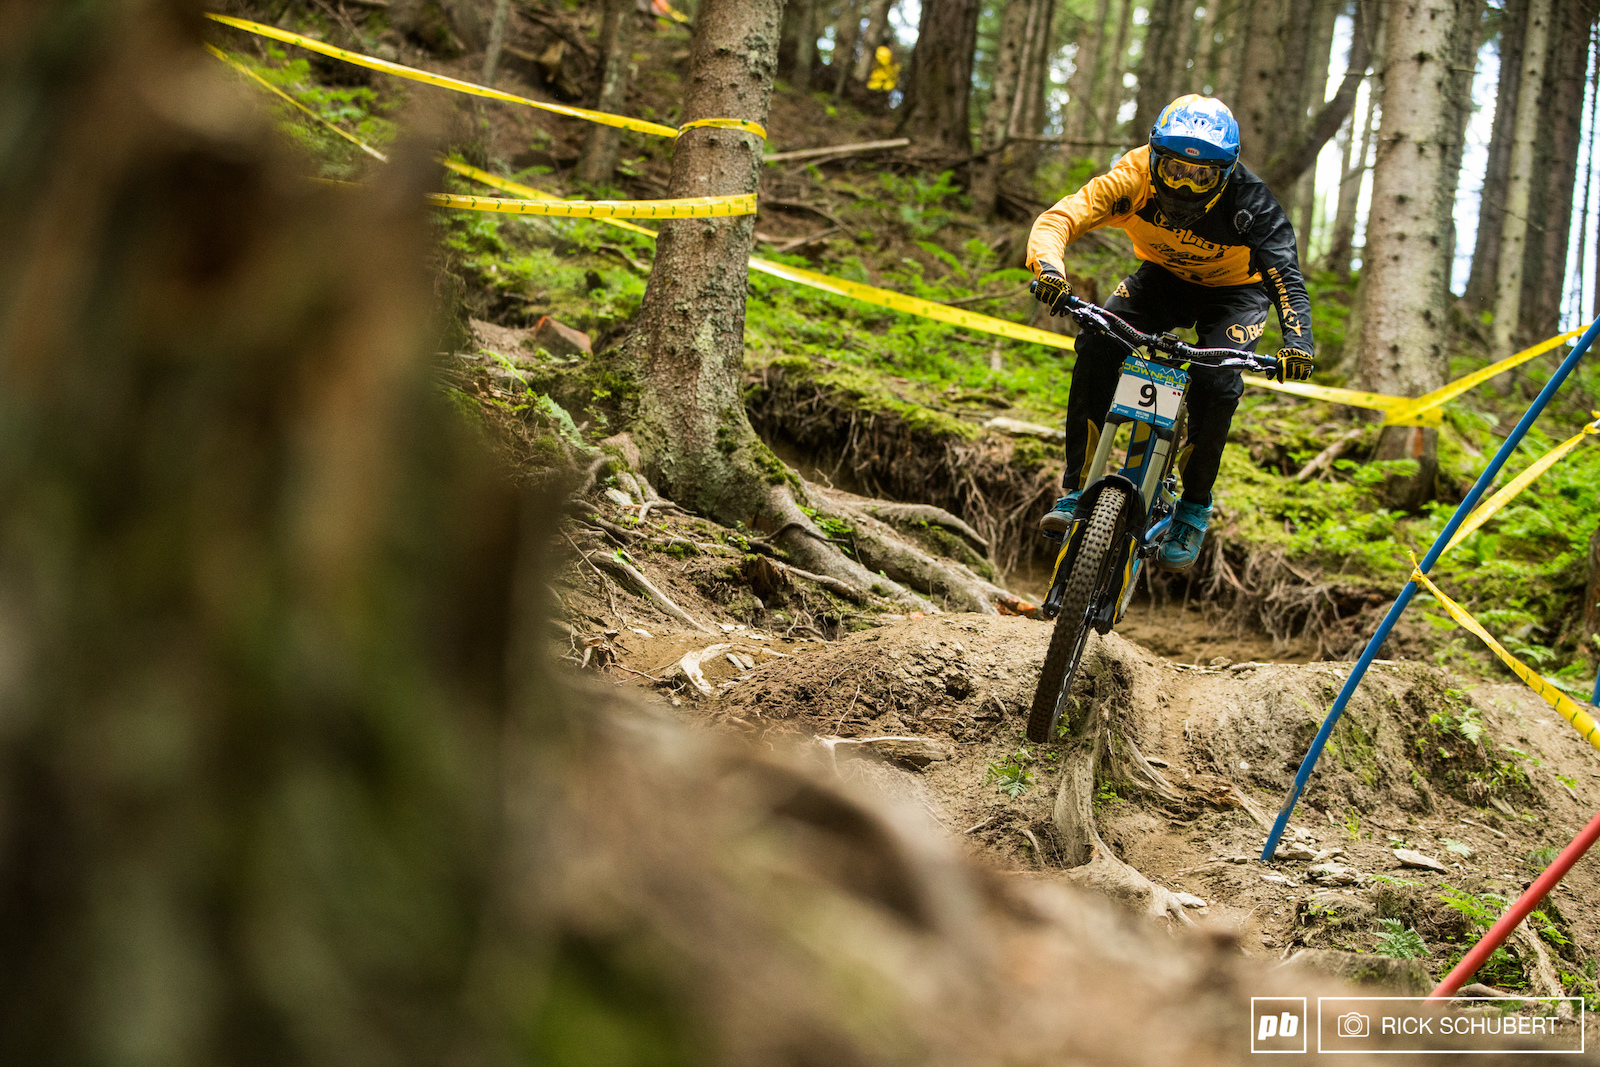 Phil Atwill stepped it up big times and had a stellar bottom section which lead him to the fastest time of the day